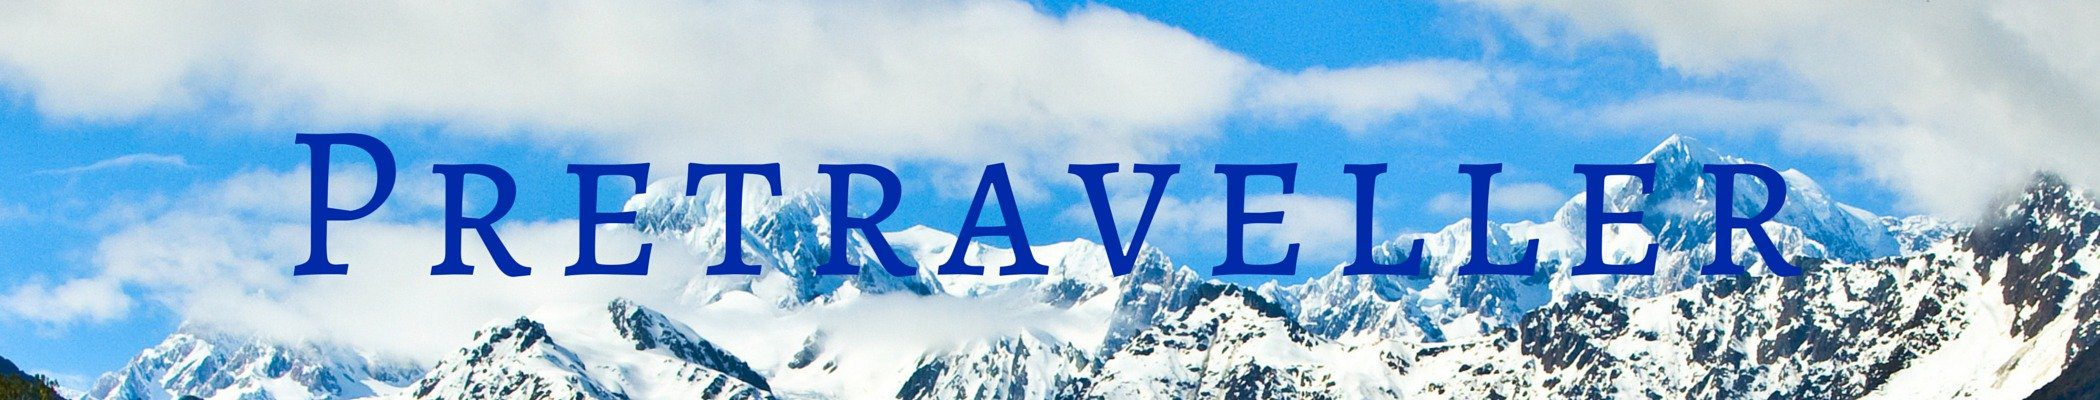 Pretraveller - Travel With Confidence